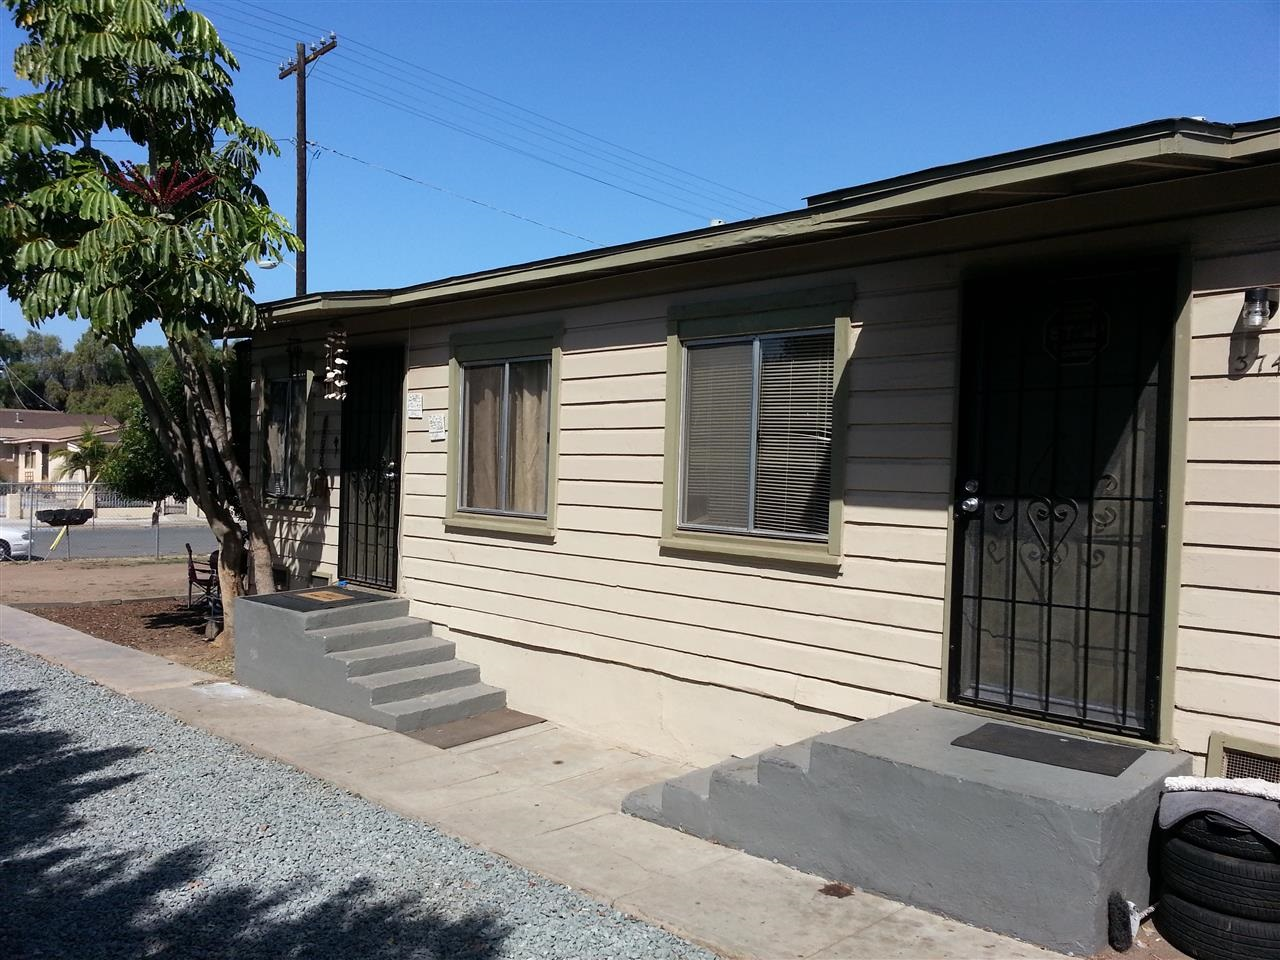 Main Photo: SOUTH SD Property for sale: 3742 Birch St in San Diego